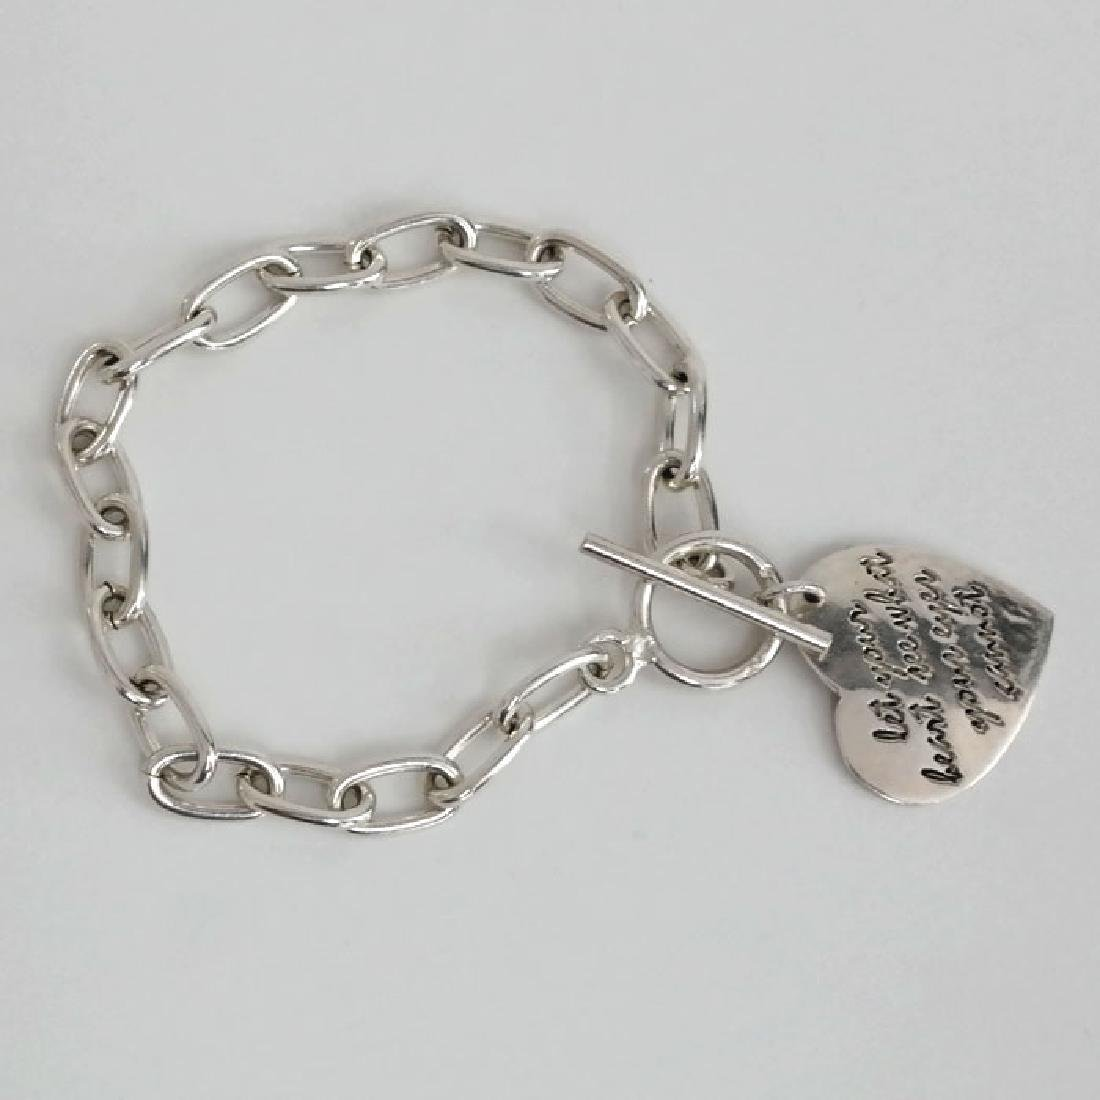 Vintage sterling silver toggle clasp and chain bracelet